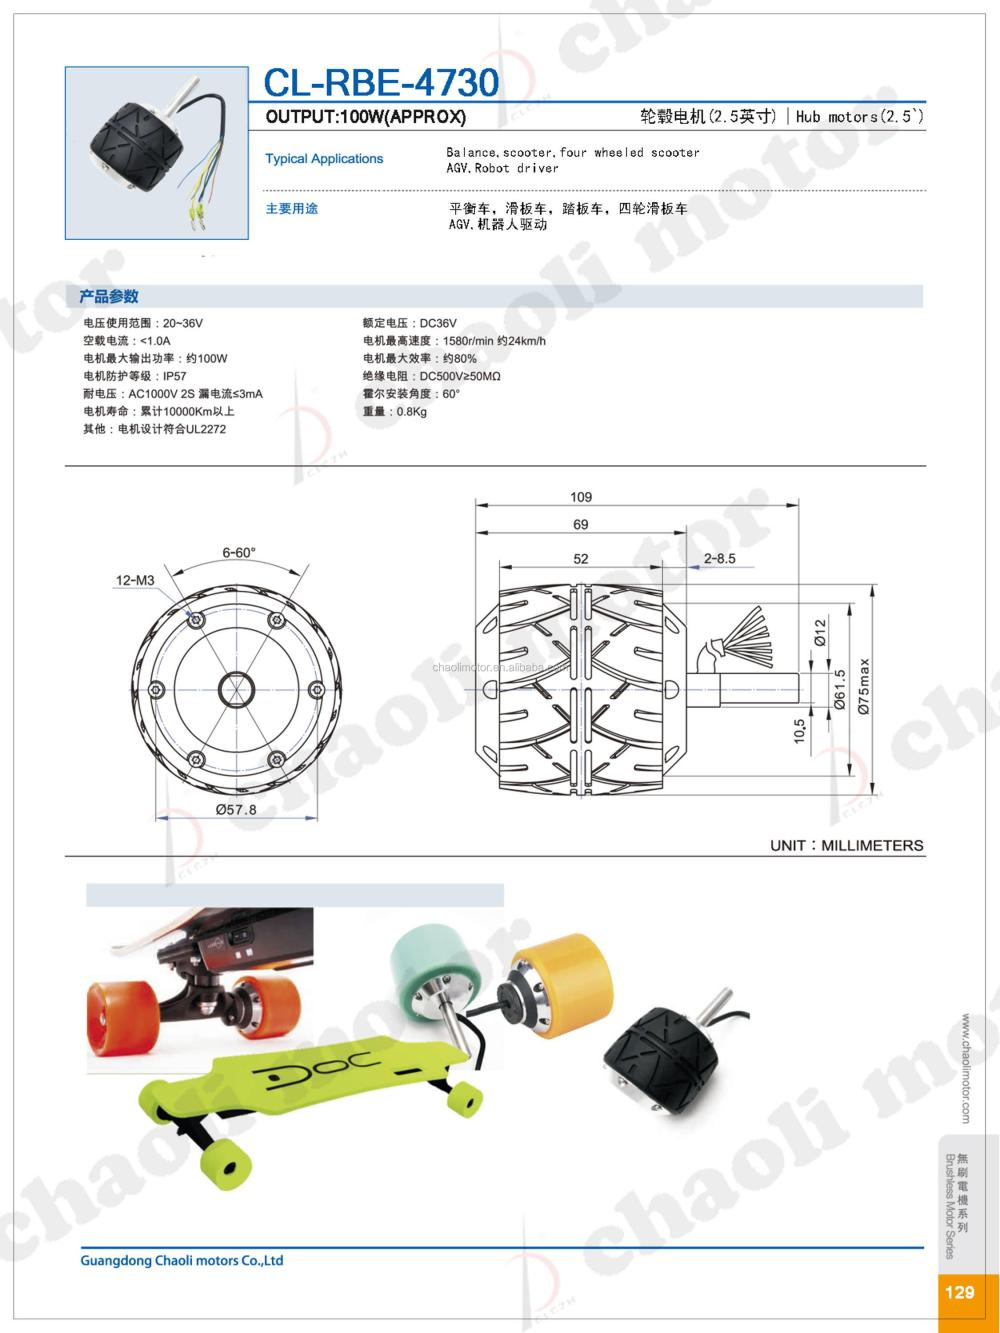 medium resolution of 2 5 inch wheel hub motor cl rbe 4730 with 36v and 100w for scooter